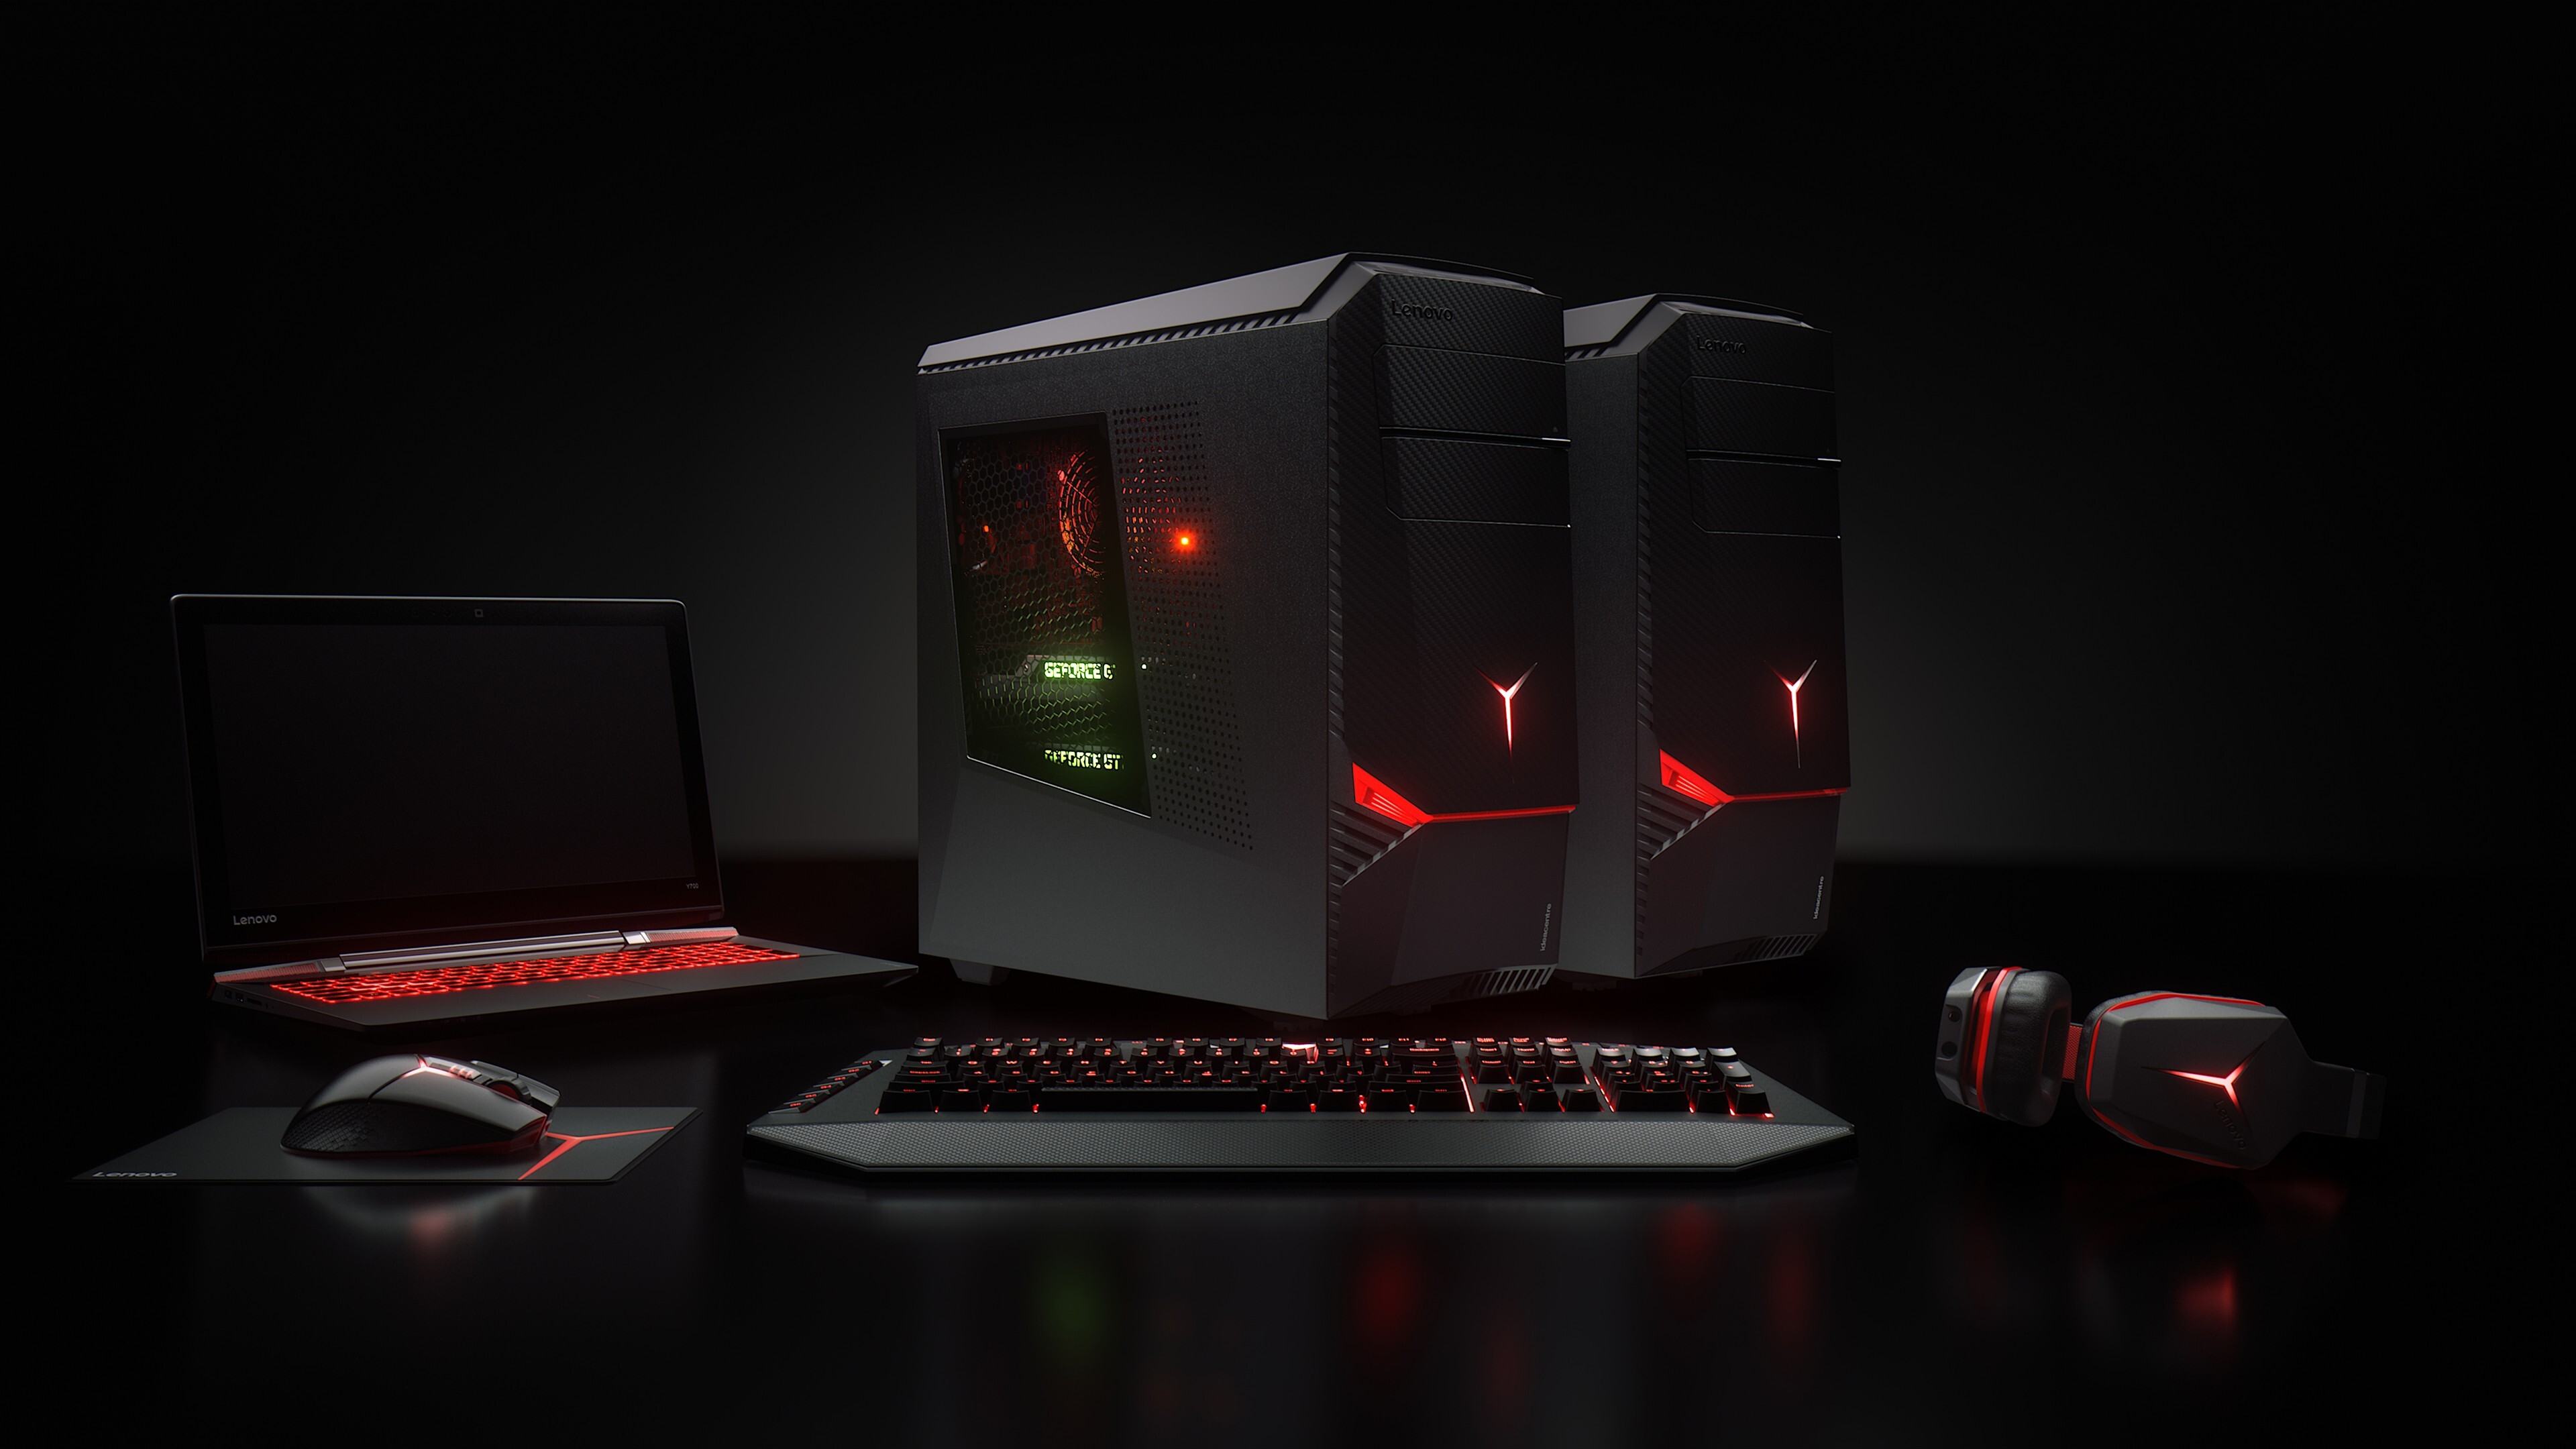 3840x2160 Lenovo Pro Gaming Pc 4k Hd 4k Wallpapers Images